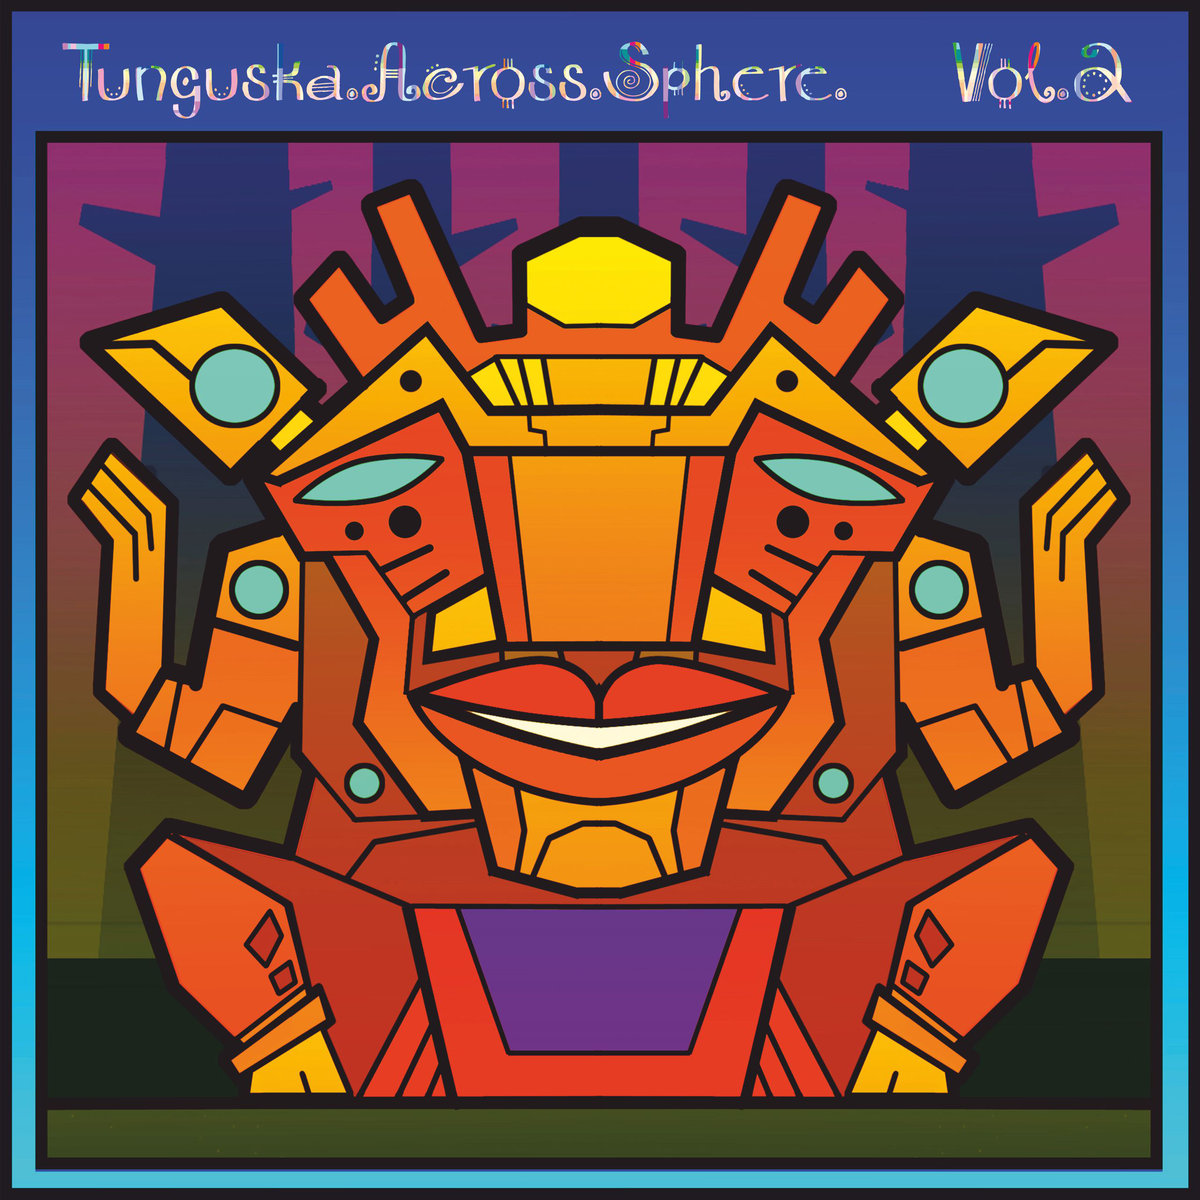 Ellipsis II - Tunguska.Across.Sphere. Vol.2